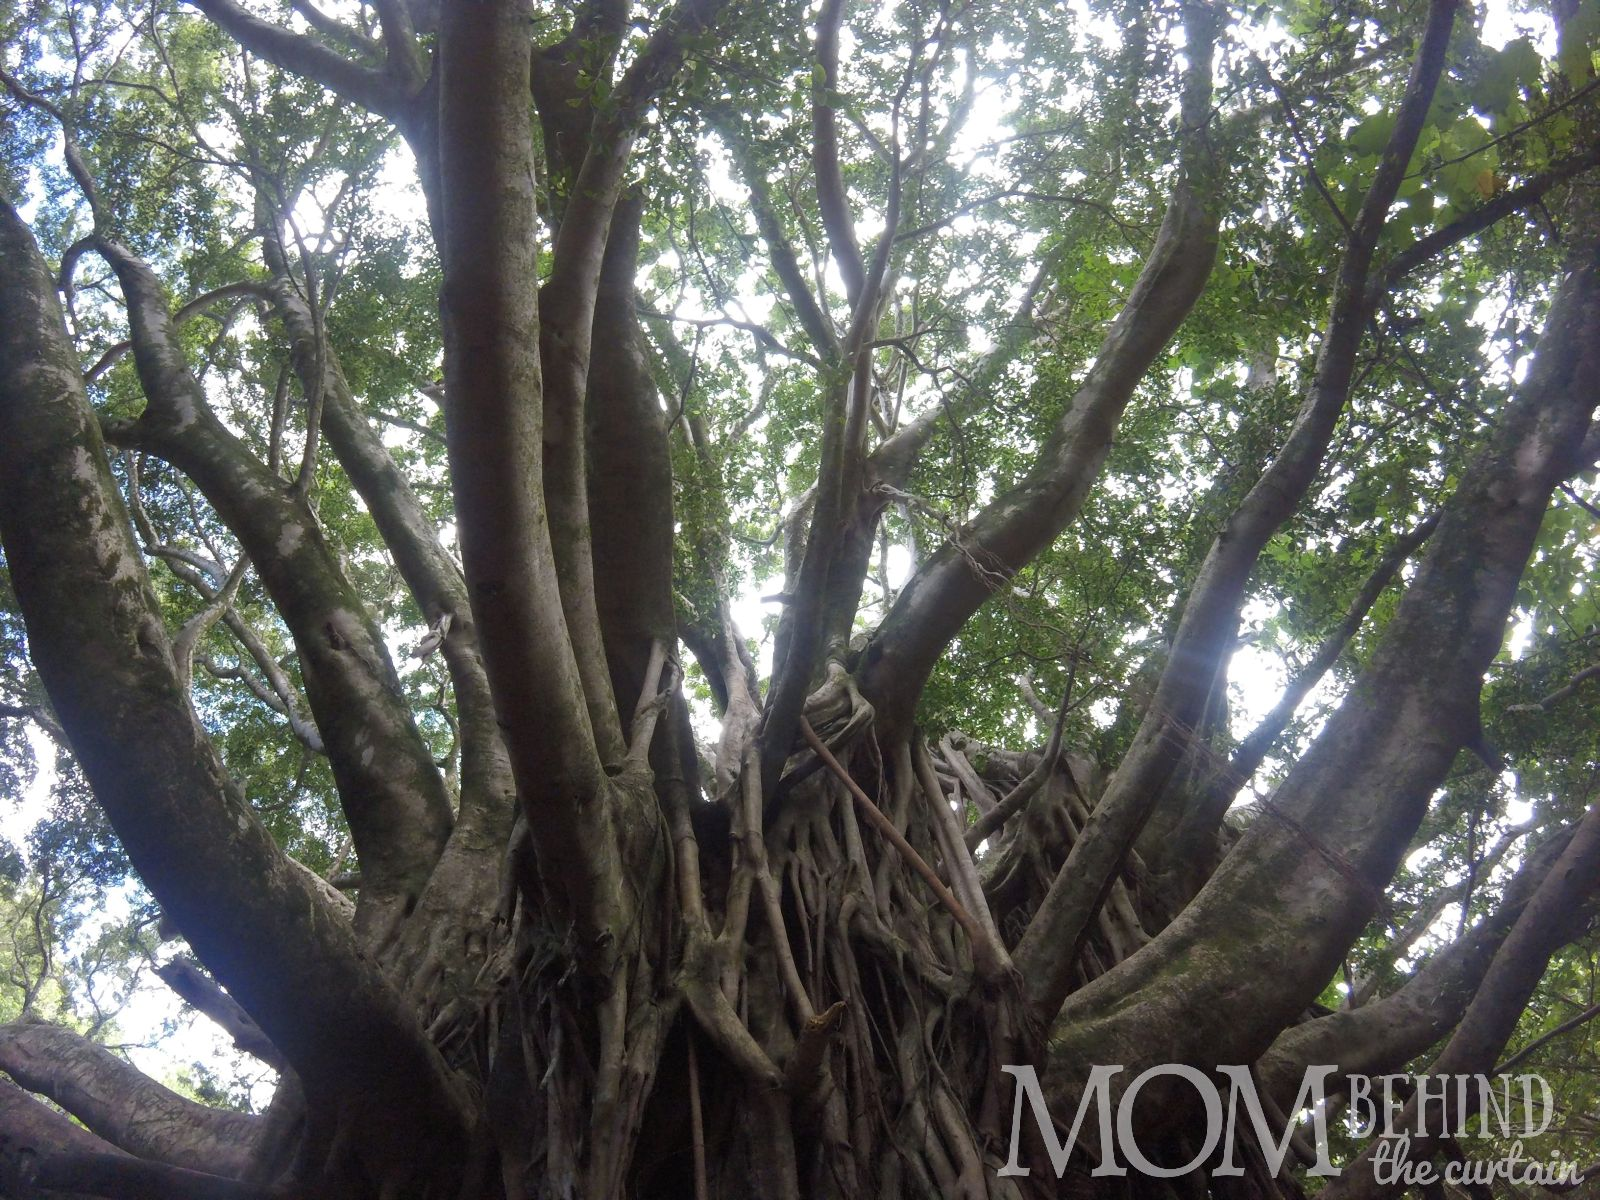 Banyan tree, tree climber's dream, on the Pipiwai trail to the Bamboo Forest, Maui